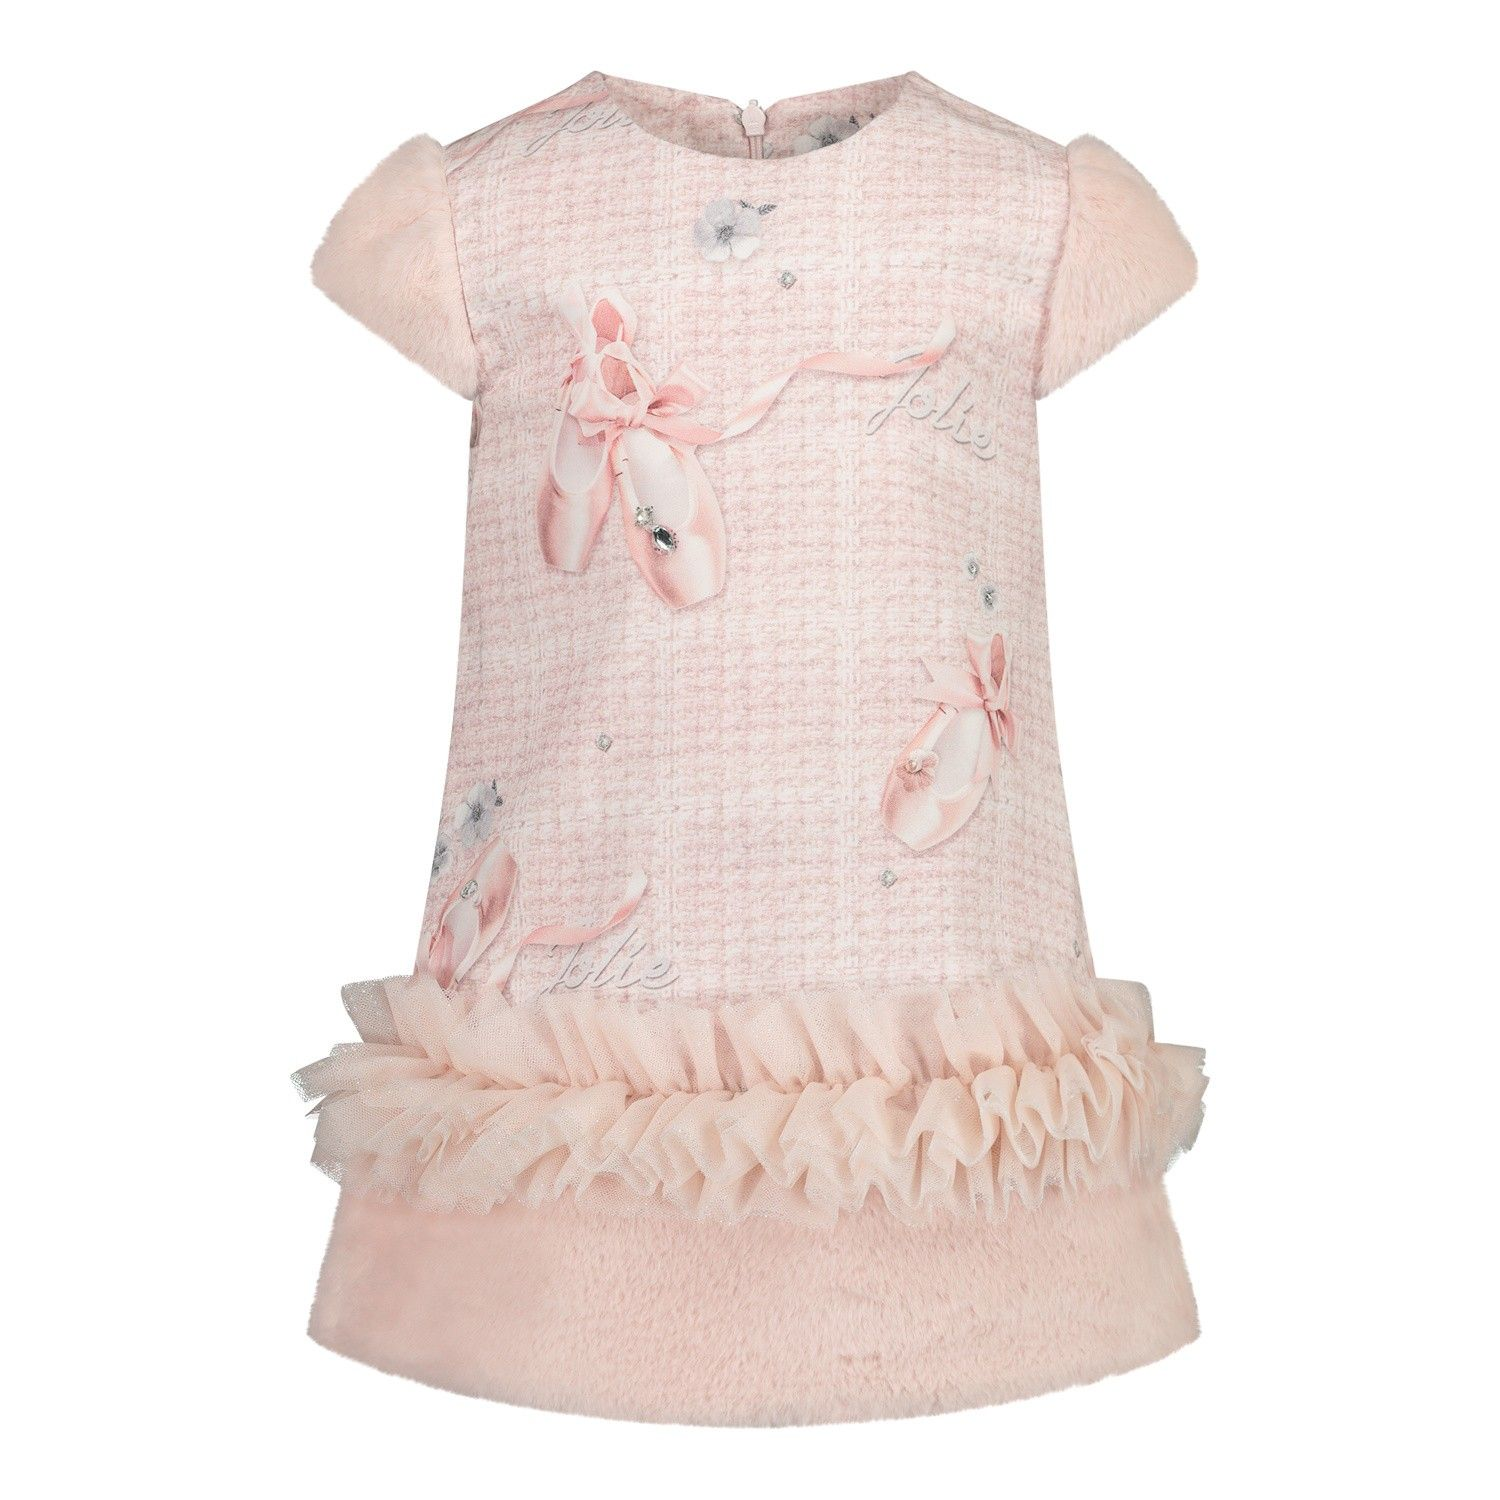 Picture of Lapin 202E3219 baby dress light pink